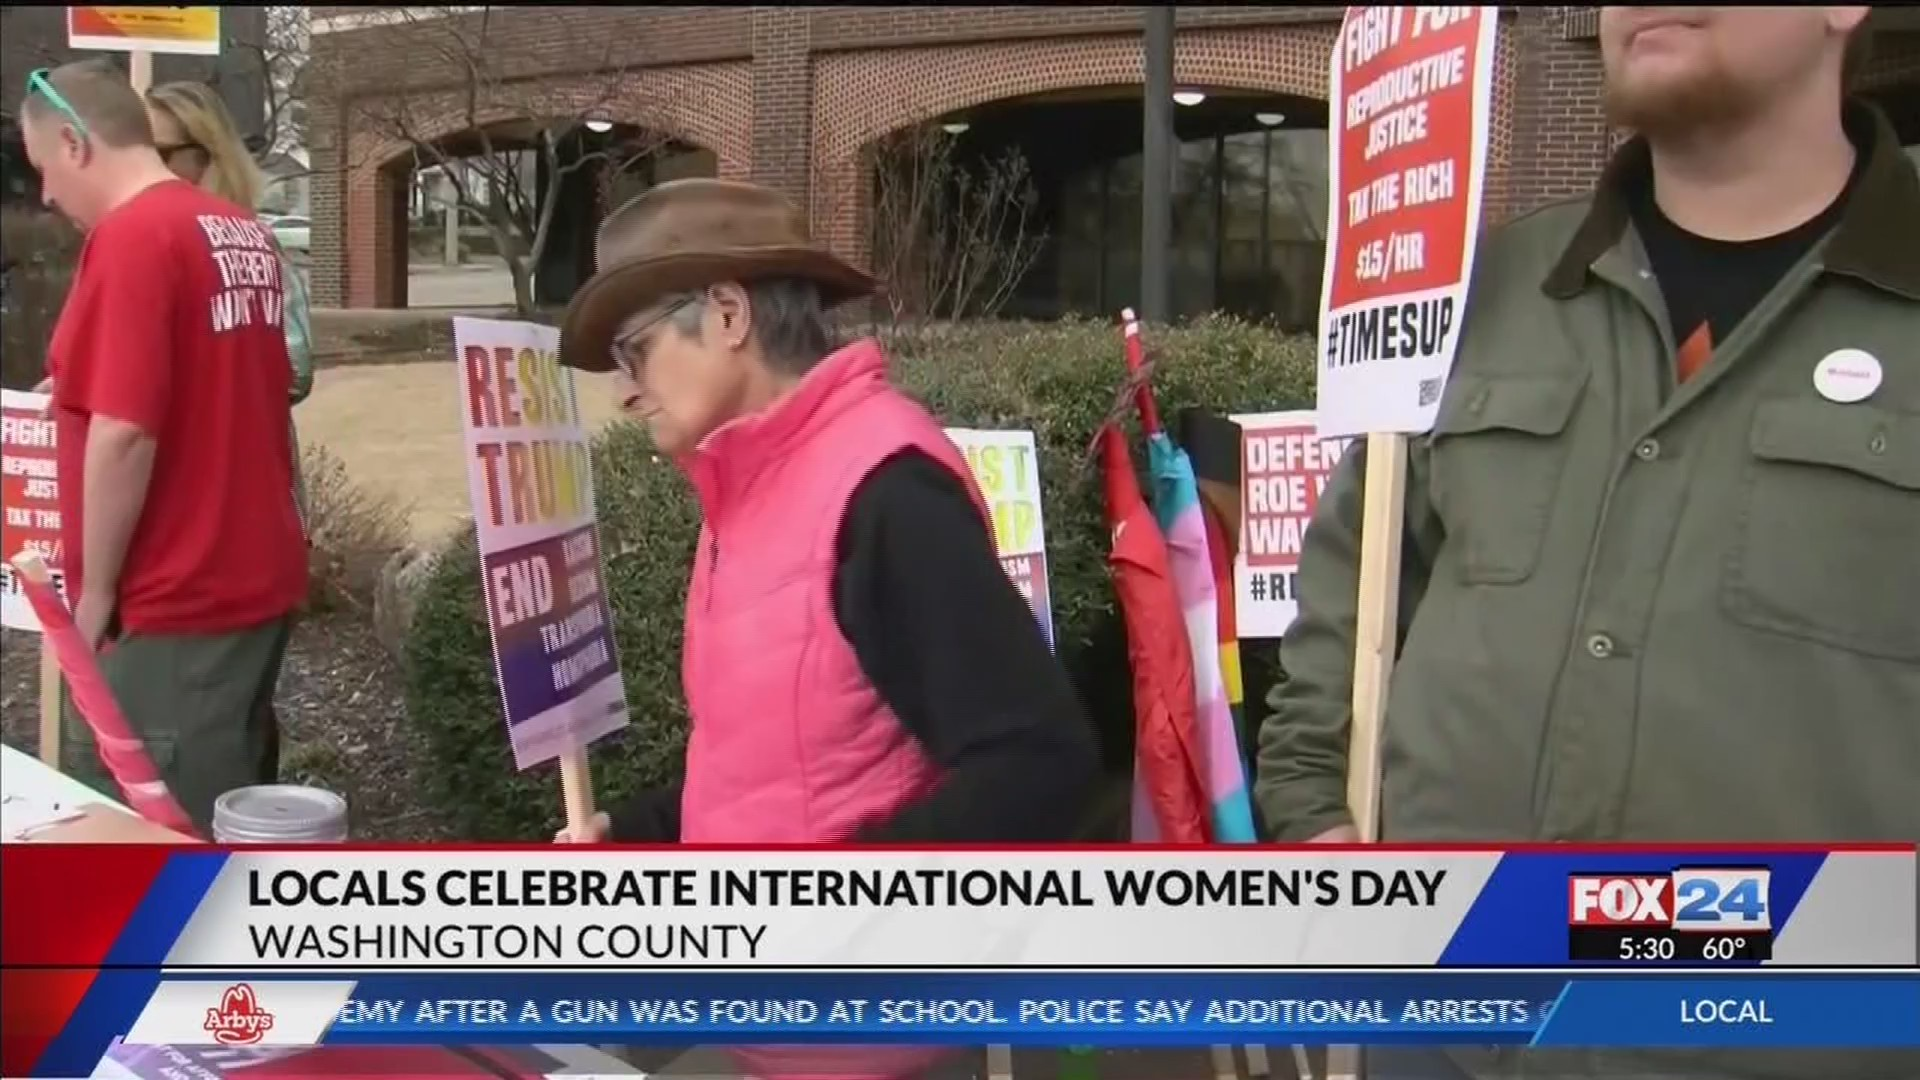 Protesters Fight for Women's Equality on International Women's Day